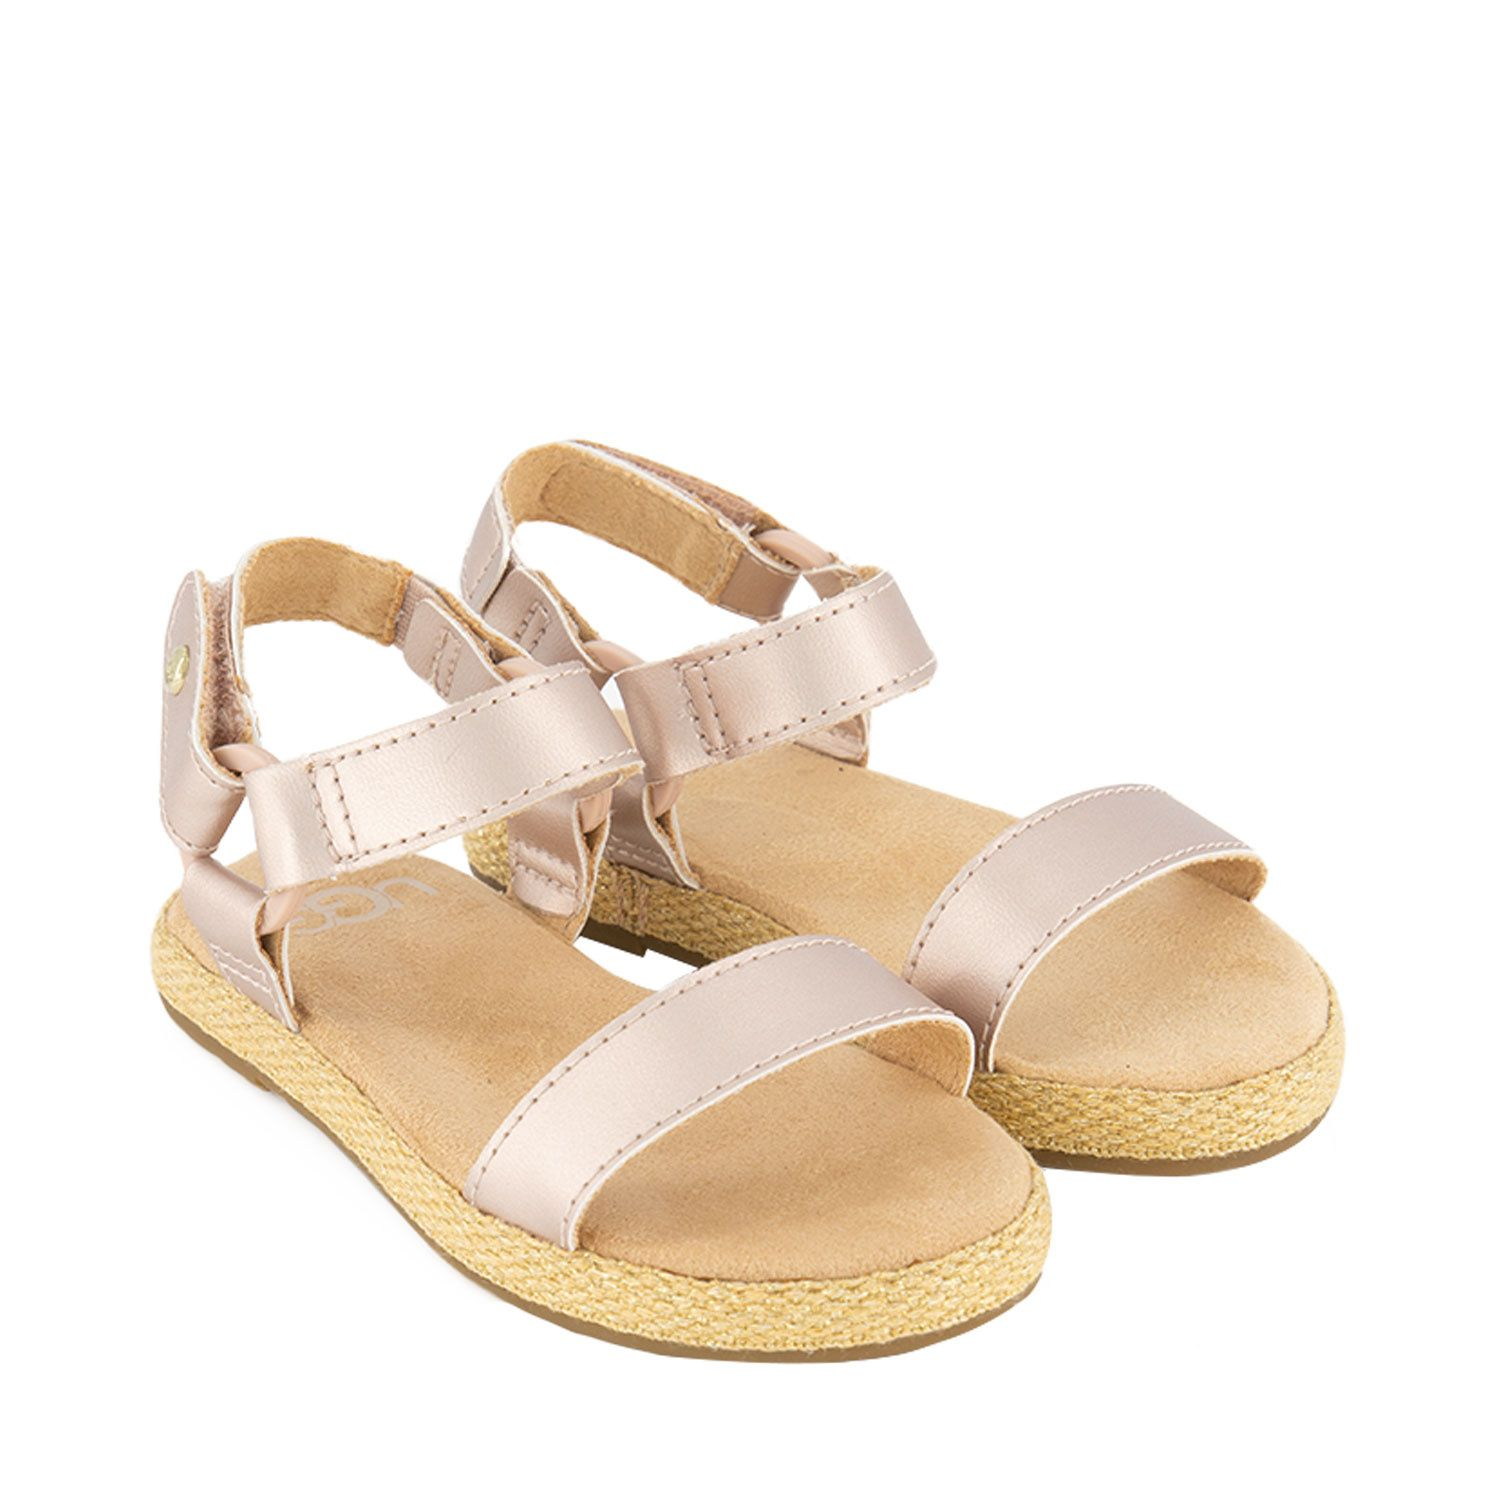 Picture of Ugg 1121493 kids sandals rose